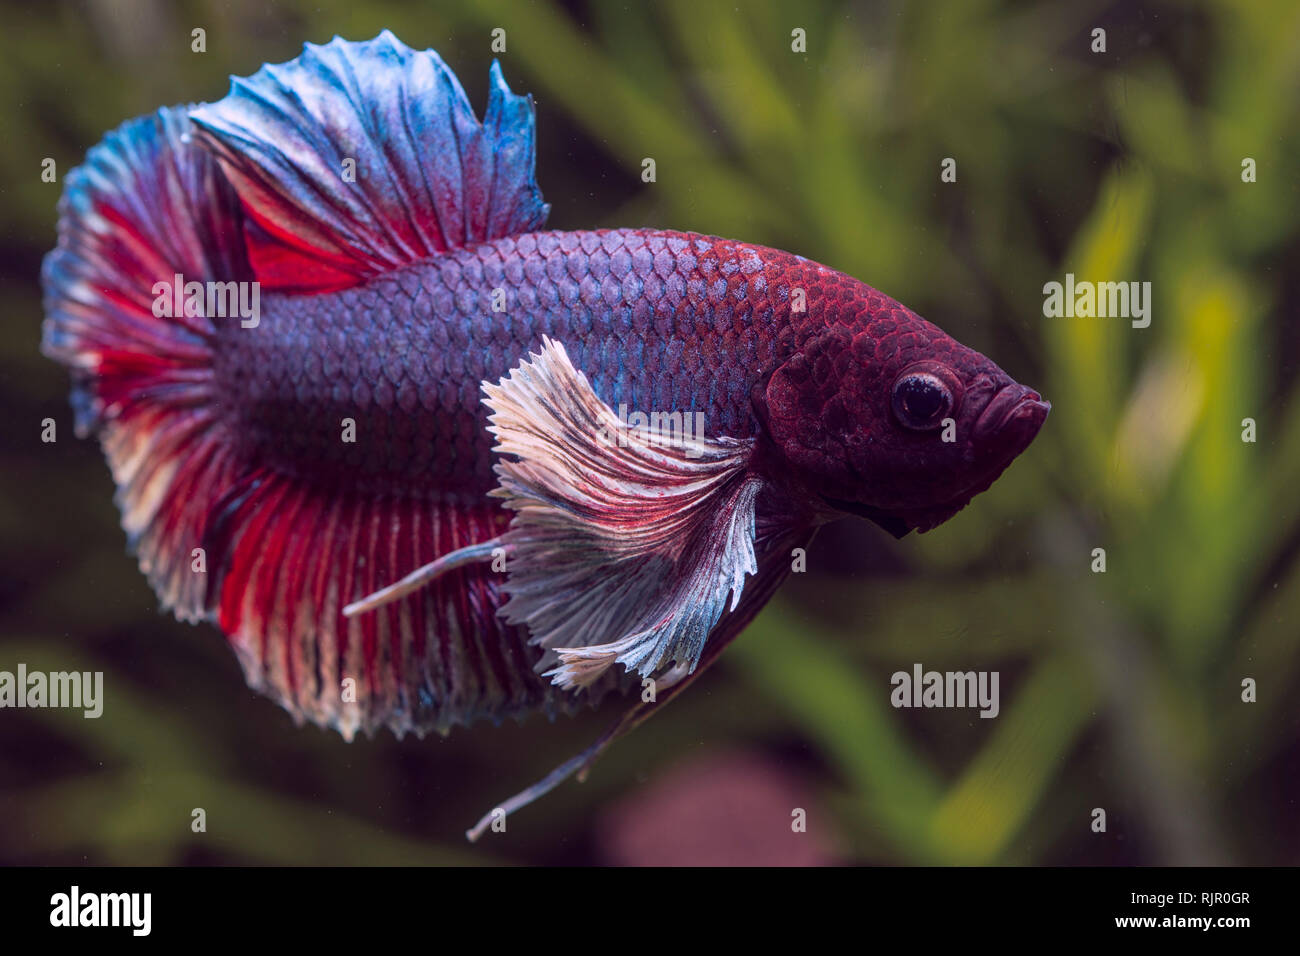 Close-up and details of a Dumbo Ear Betta Fish Stock Photo